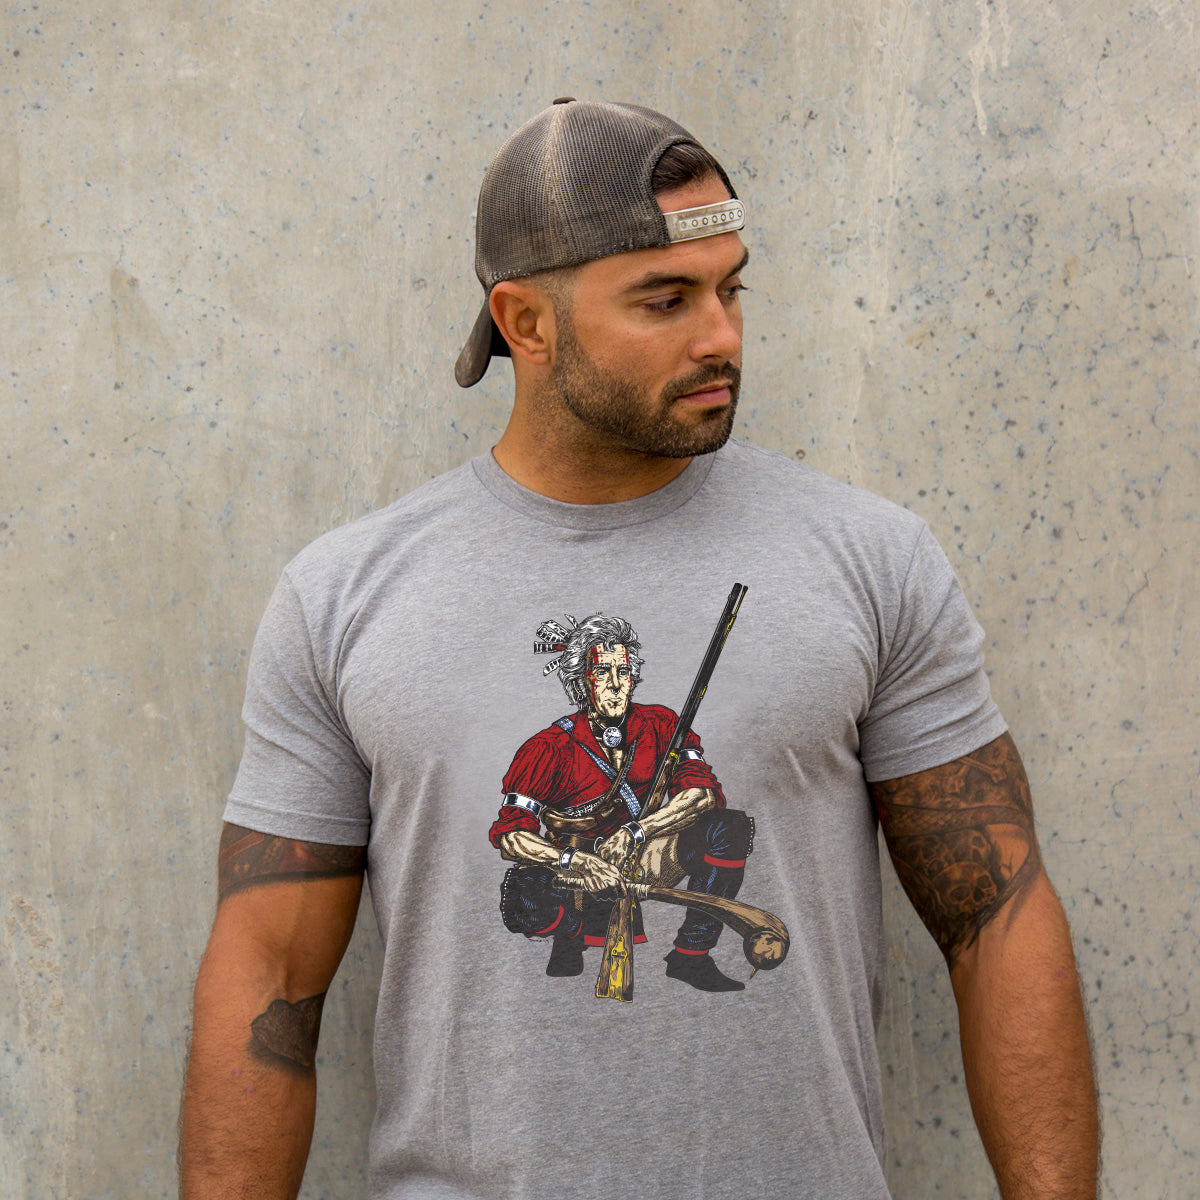 Original Pipe Hitter - Andrew Jackson -  - T-Shirts - Pipe Hitters Union